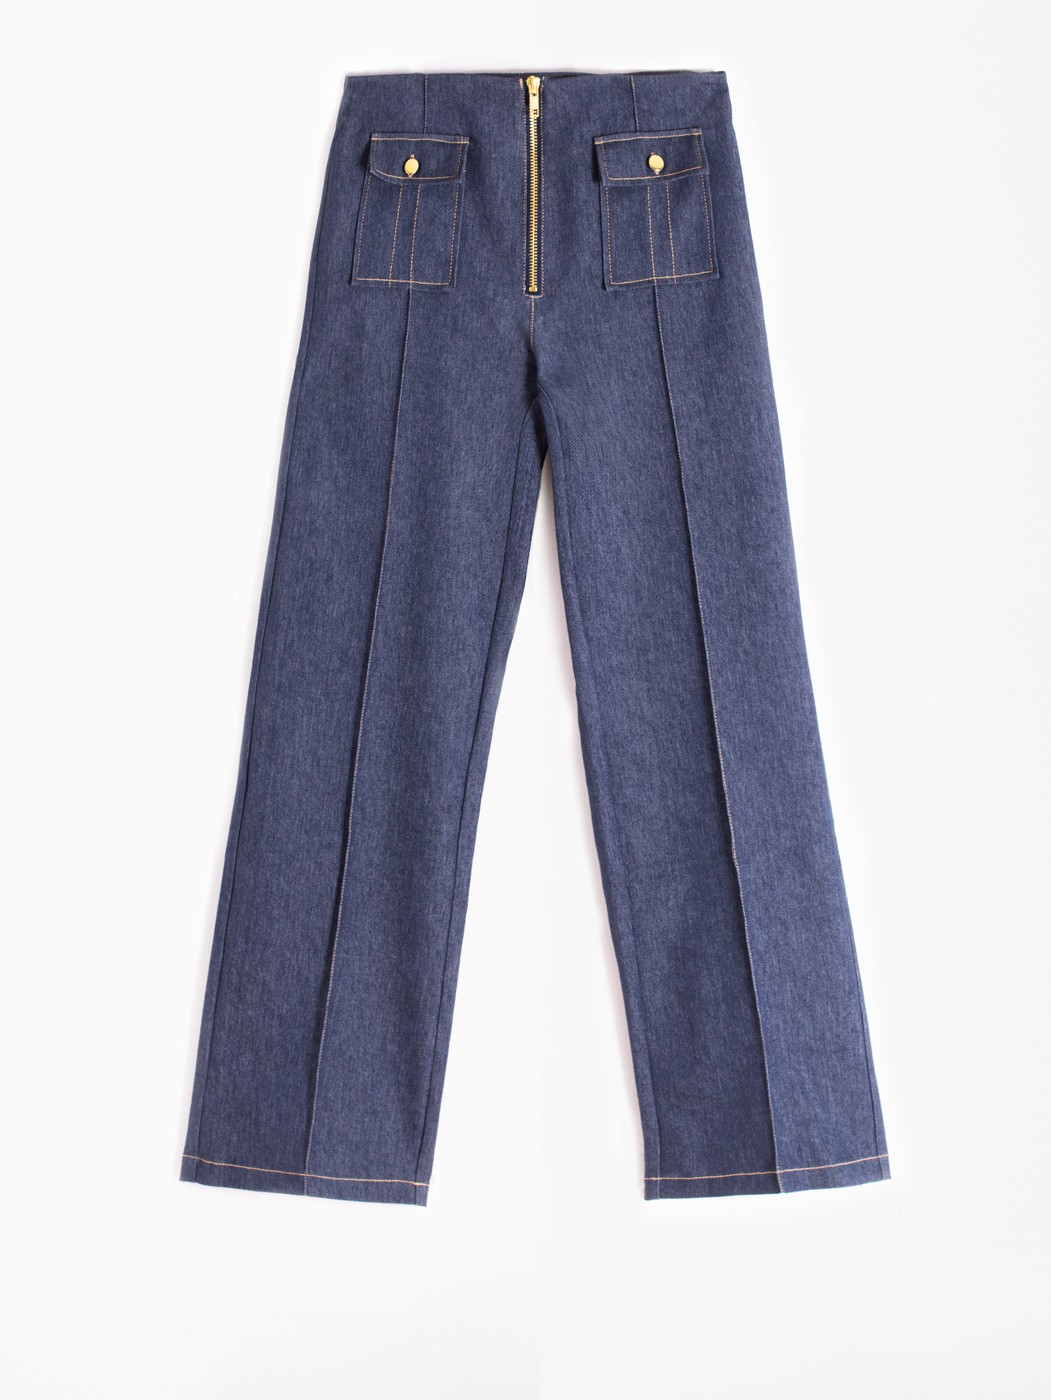 LUANA TROUSER DENIM DARK AMSTERDAM